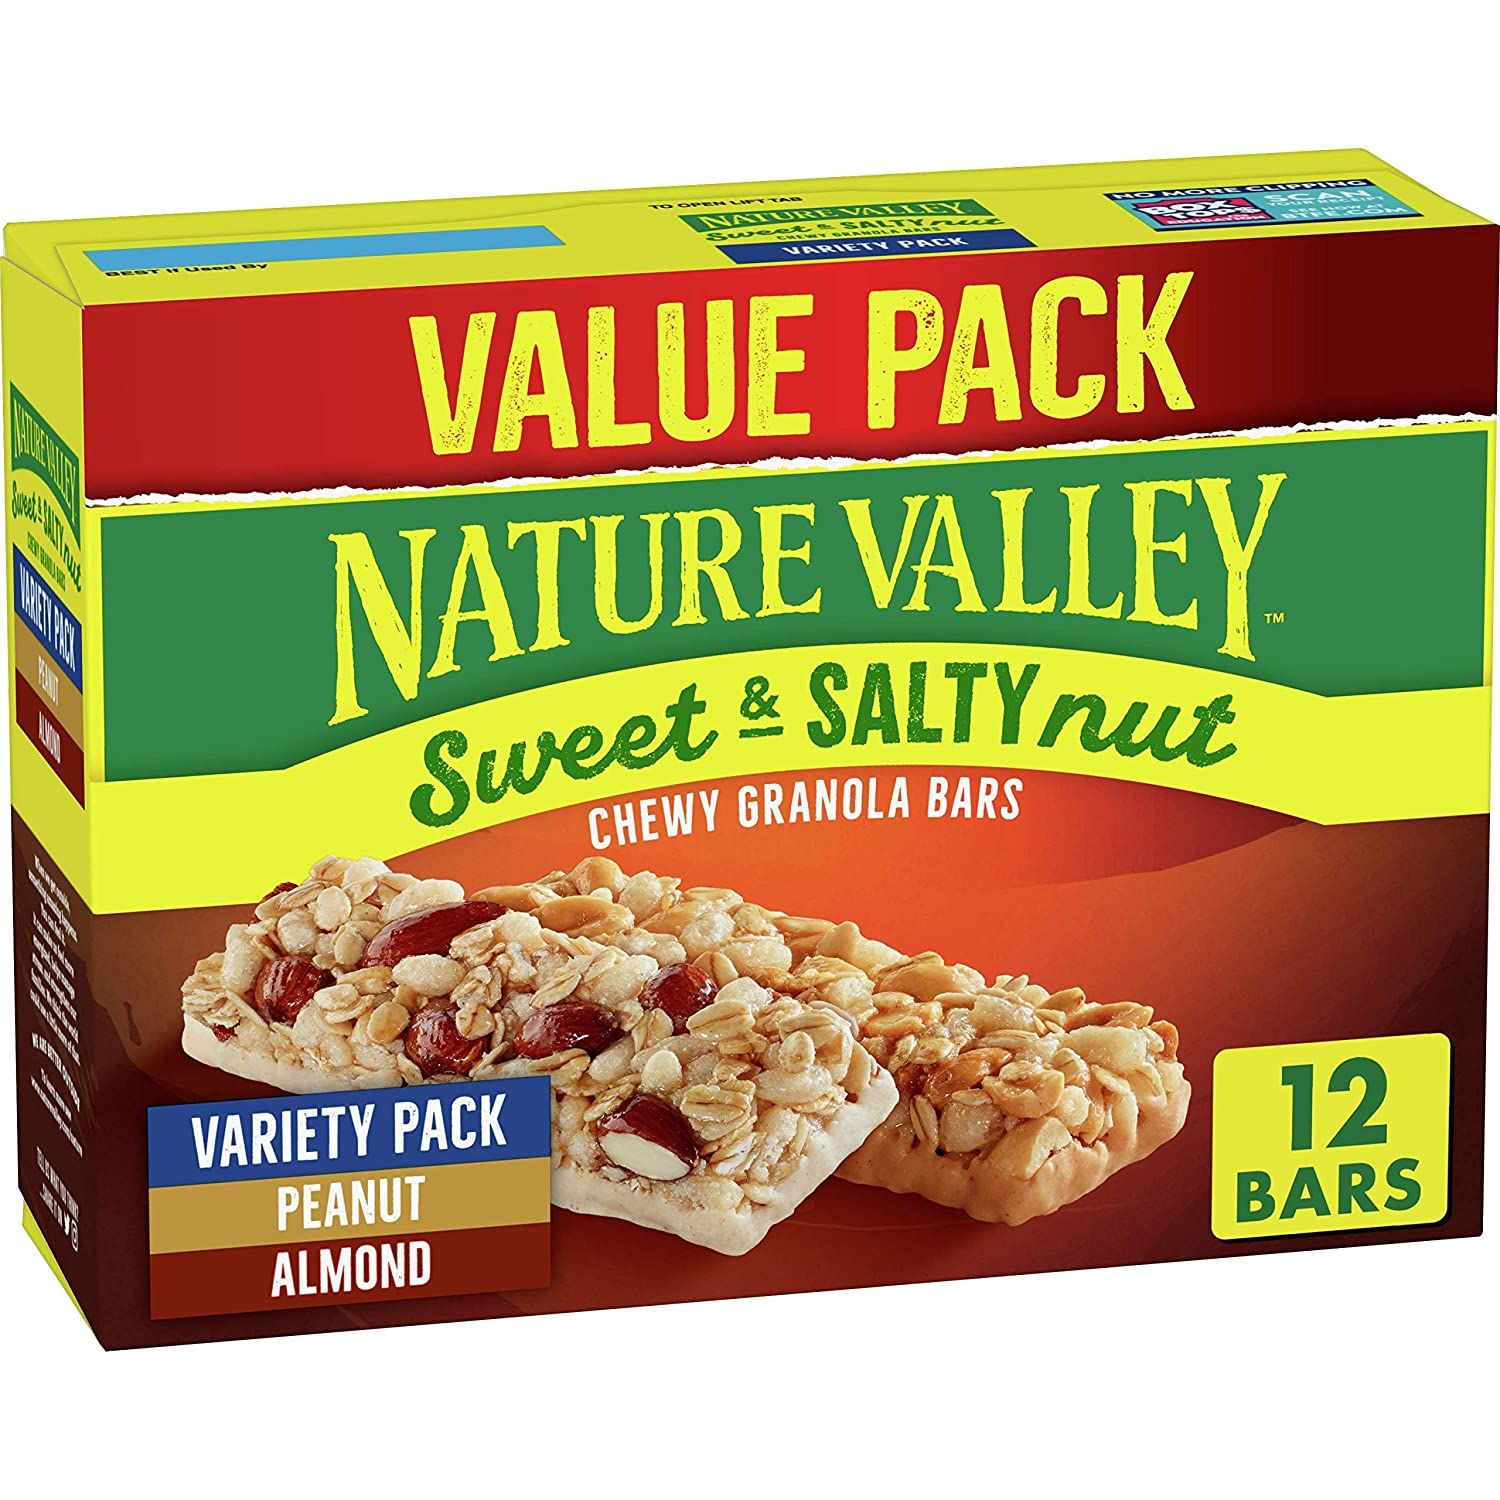 Nature Credence Valley Granola Bars Genuine Free Shipping Sweet Almond and Salty Peanut Nut